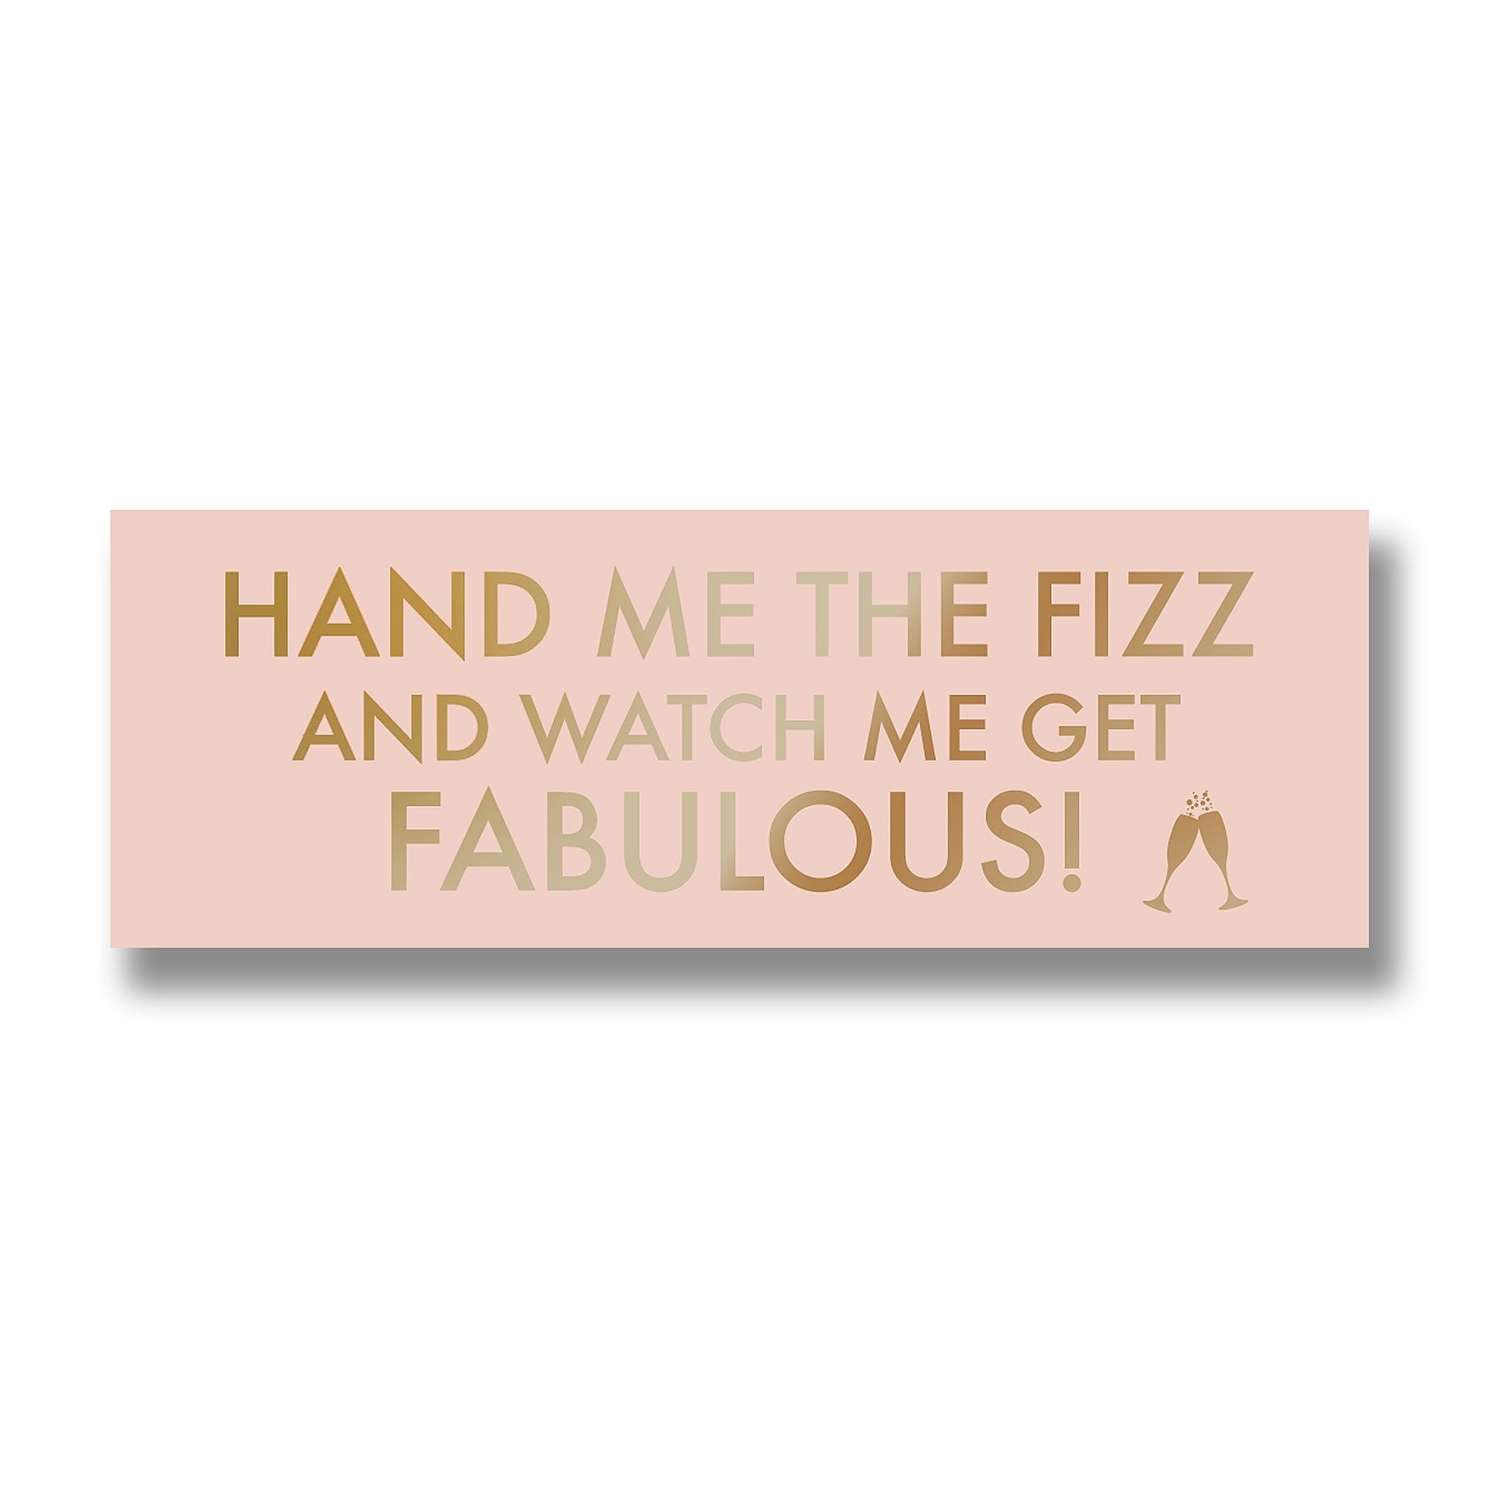 'Hand me the fizz...' Gold foil on pink background